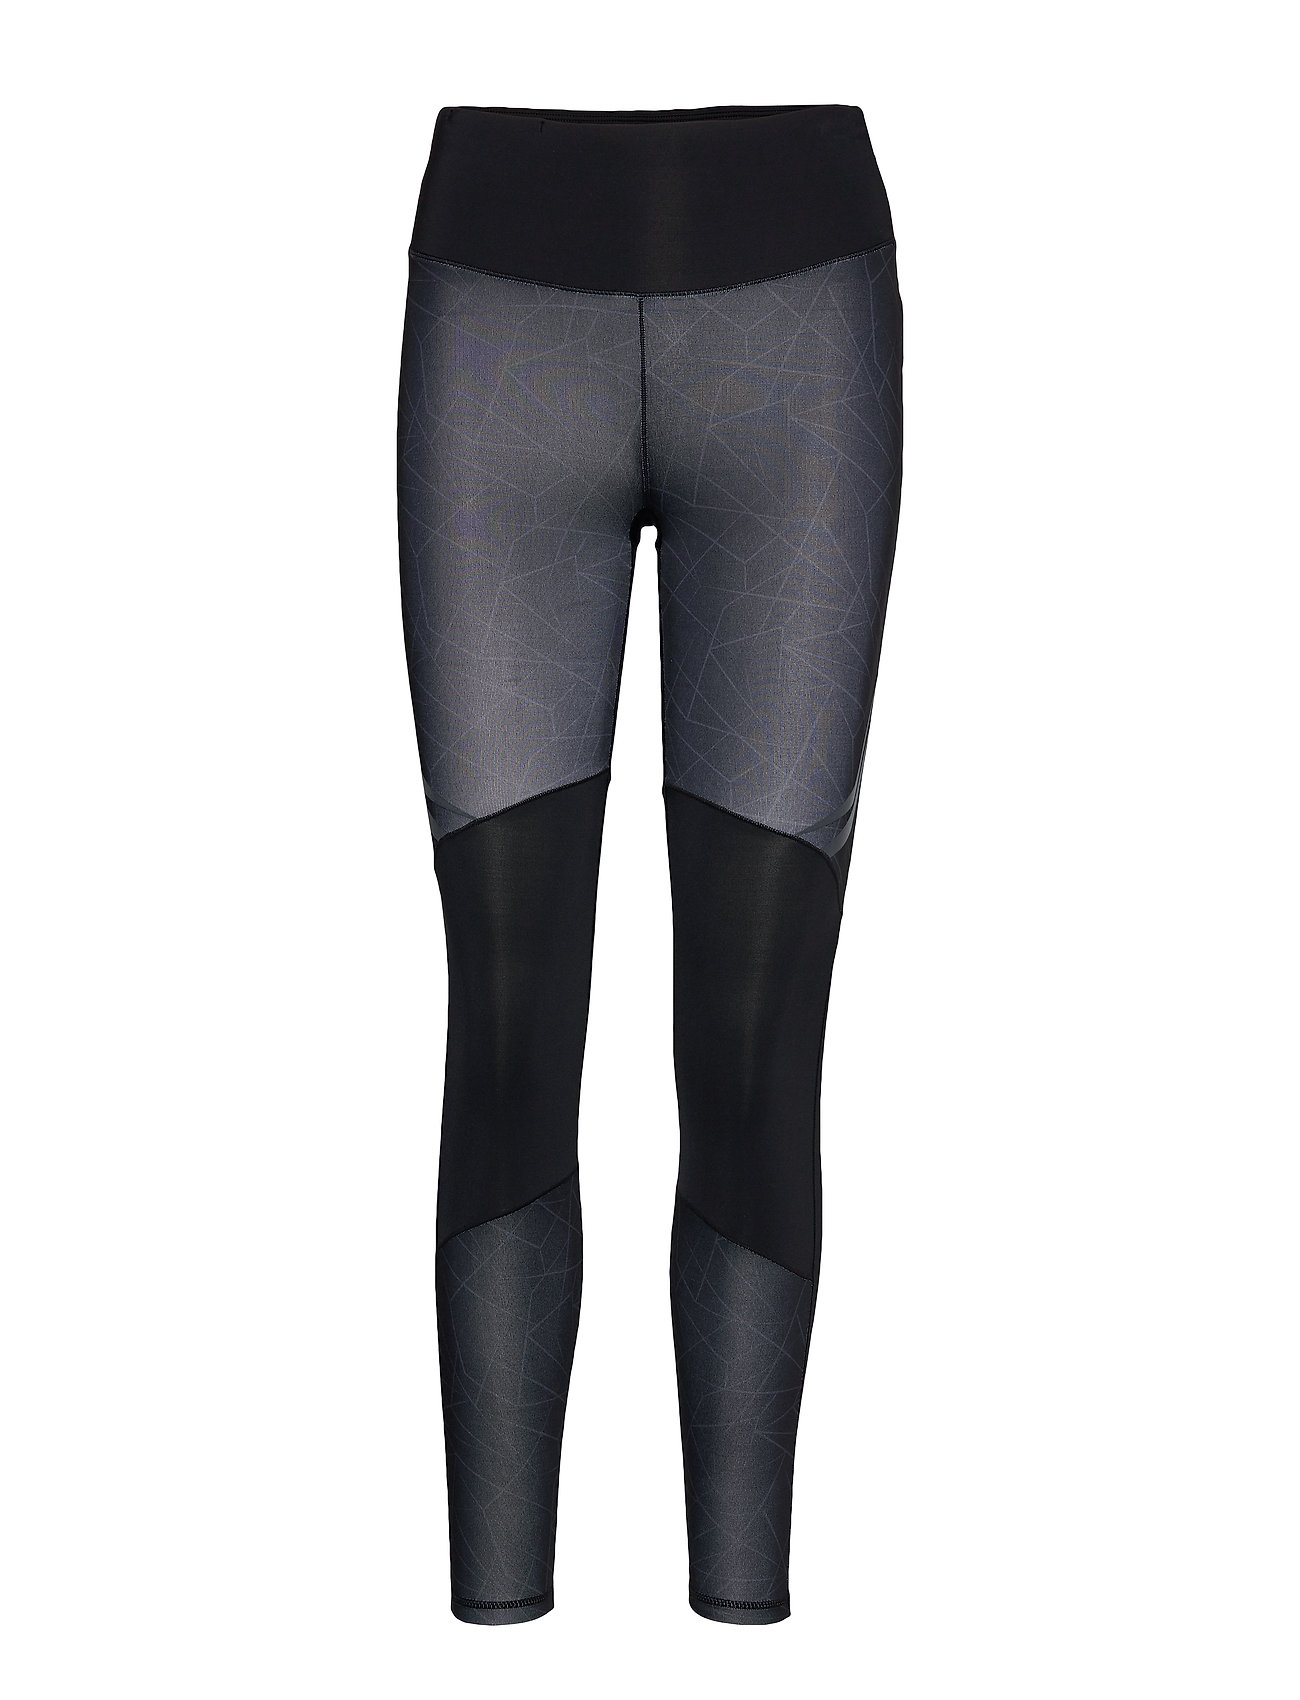 Craft CHARGE SHAPE TIGHTS  - P CROOK/BLACK